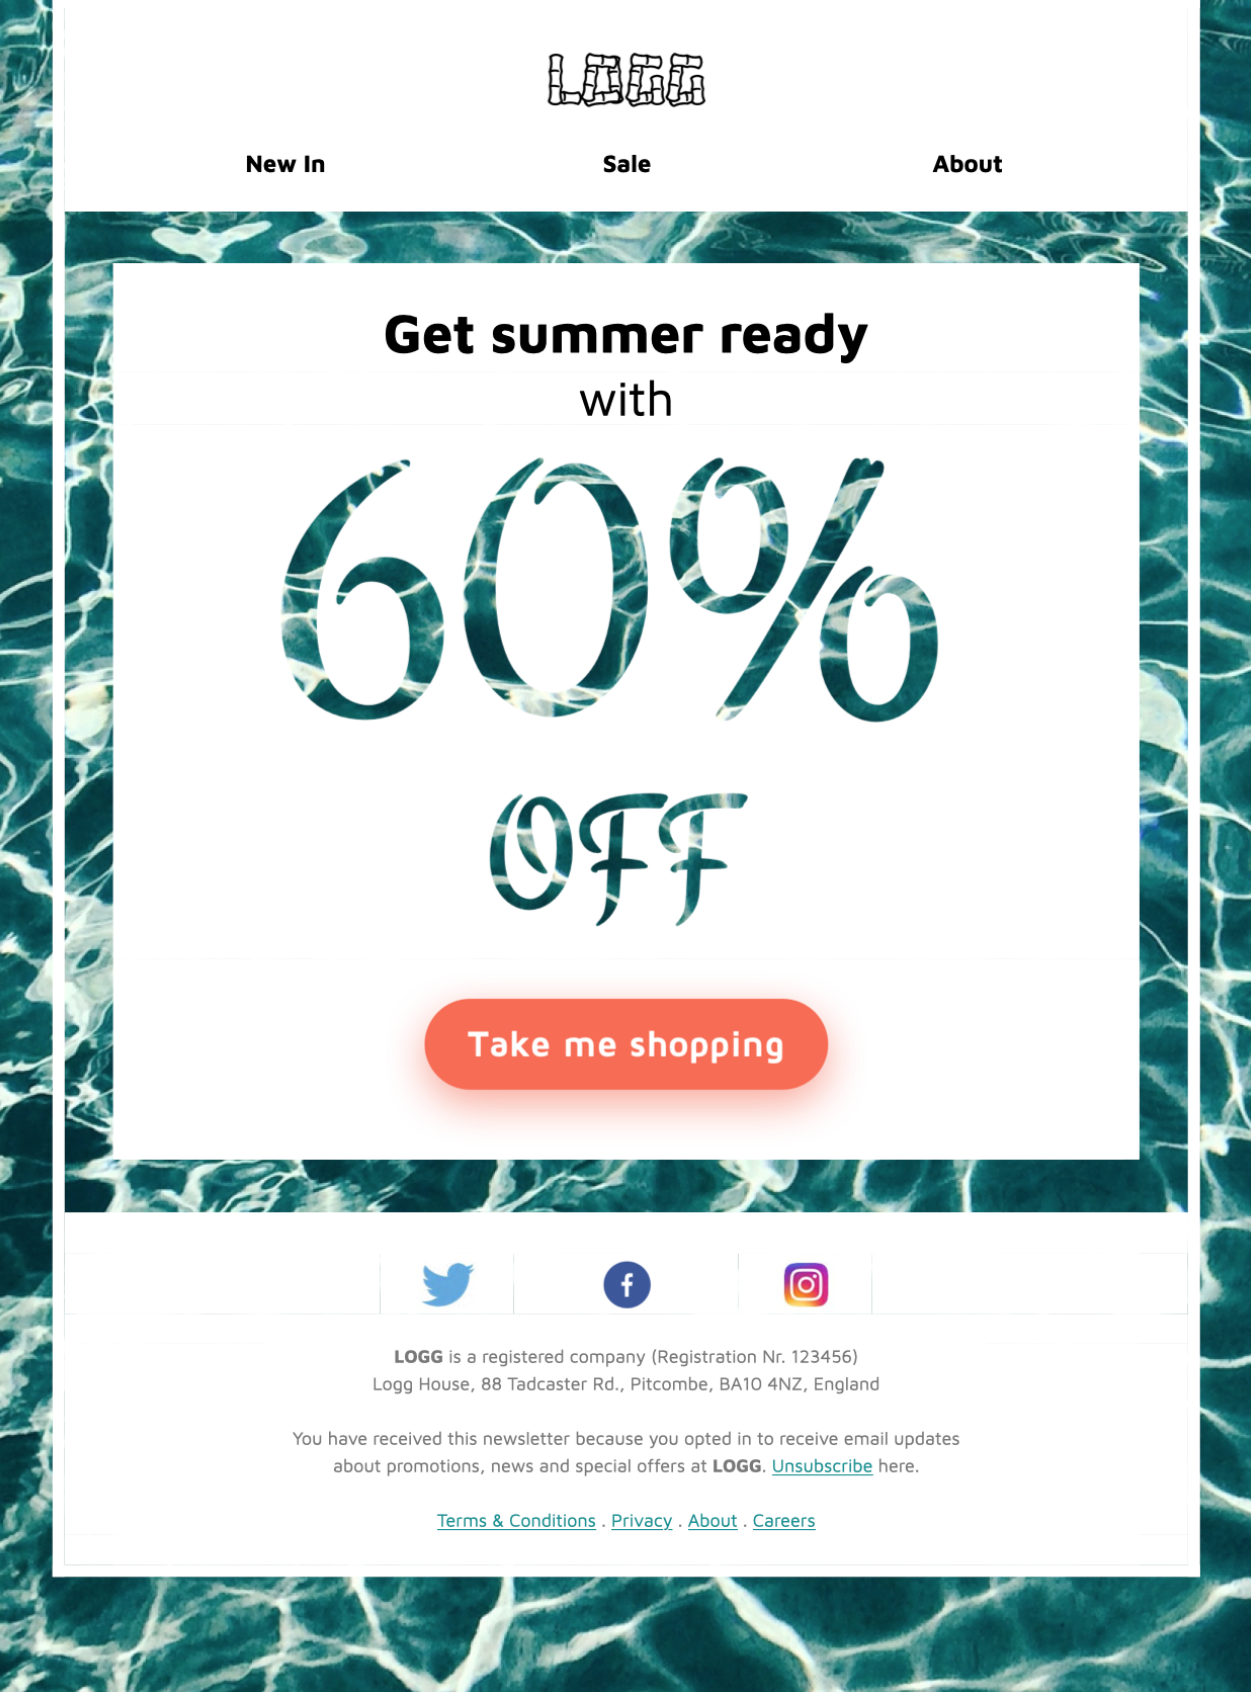 HTML email template for a summer sale or promotion